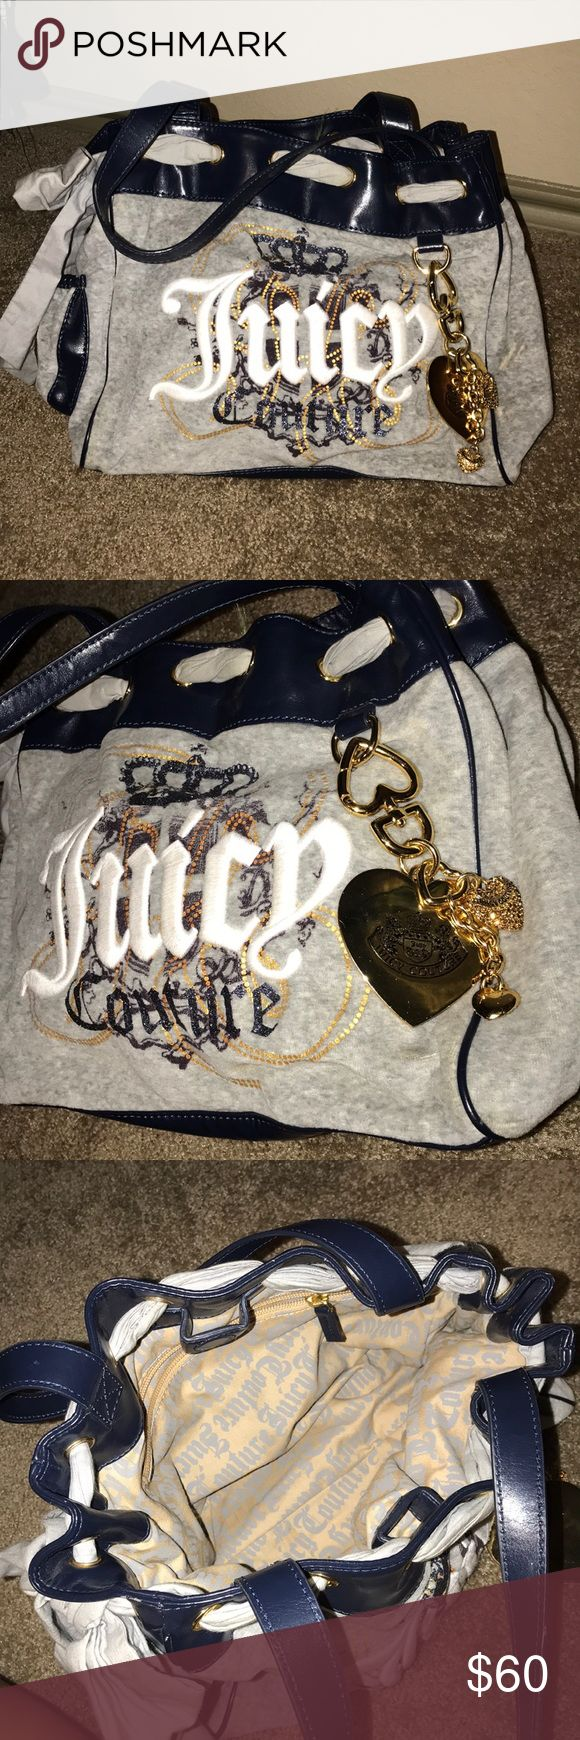 Juicy Couture Purse In great condition. No damage. Used only few times Juicy Couture Bags Shoulder Bags